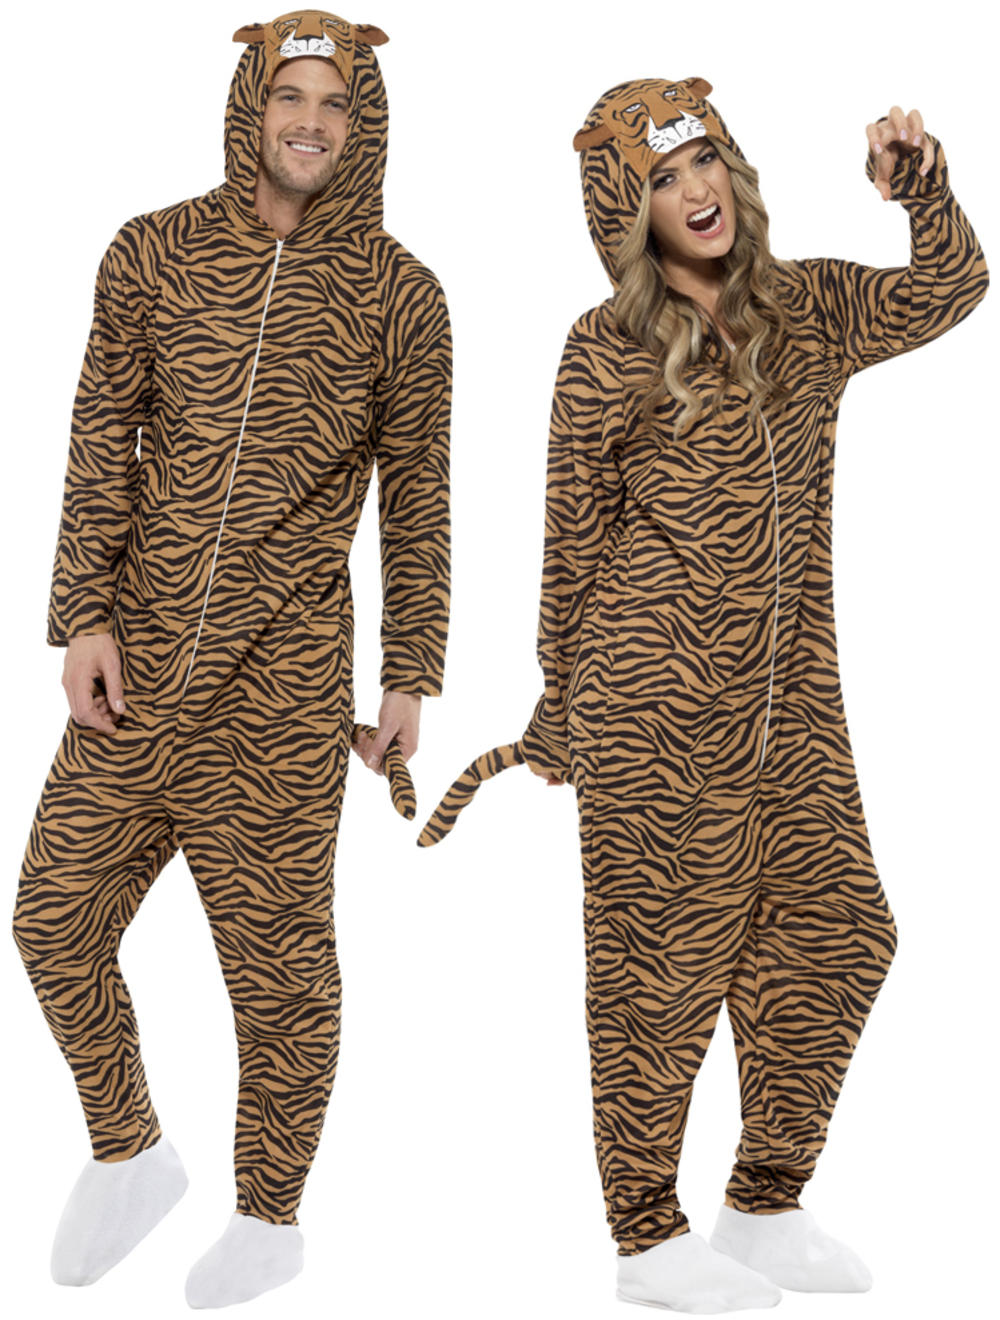 Jungle Tiger Adults Fancy Dress Zoo Animal Book Week Mens Ladies Costume Outfit